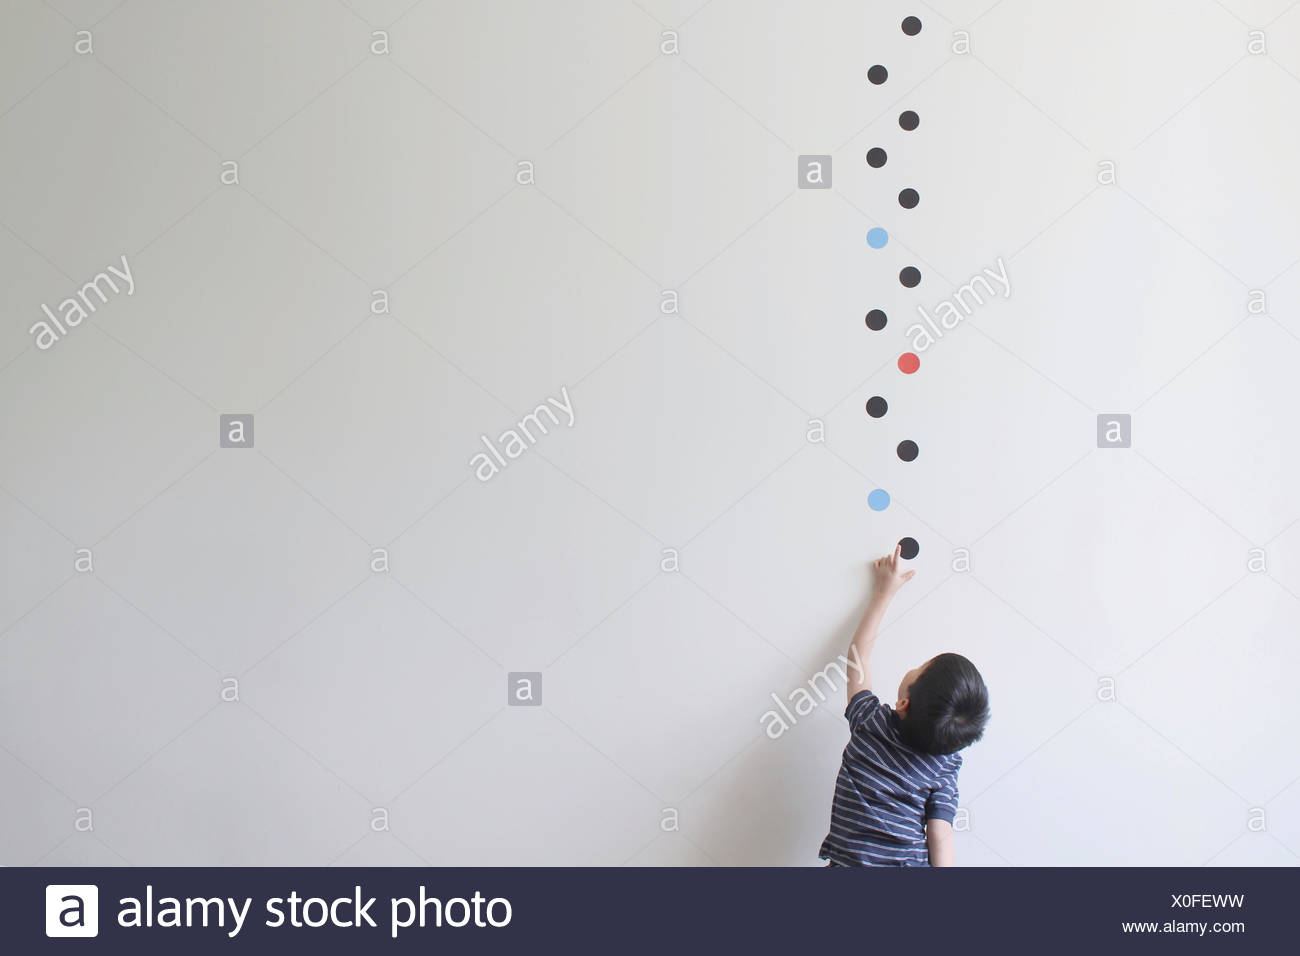 Boy trying to pick one of the dot patterns off the wall - Stock Image